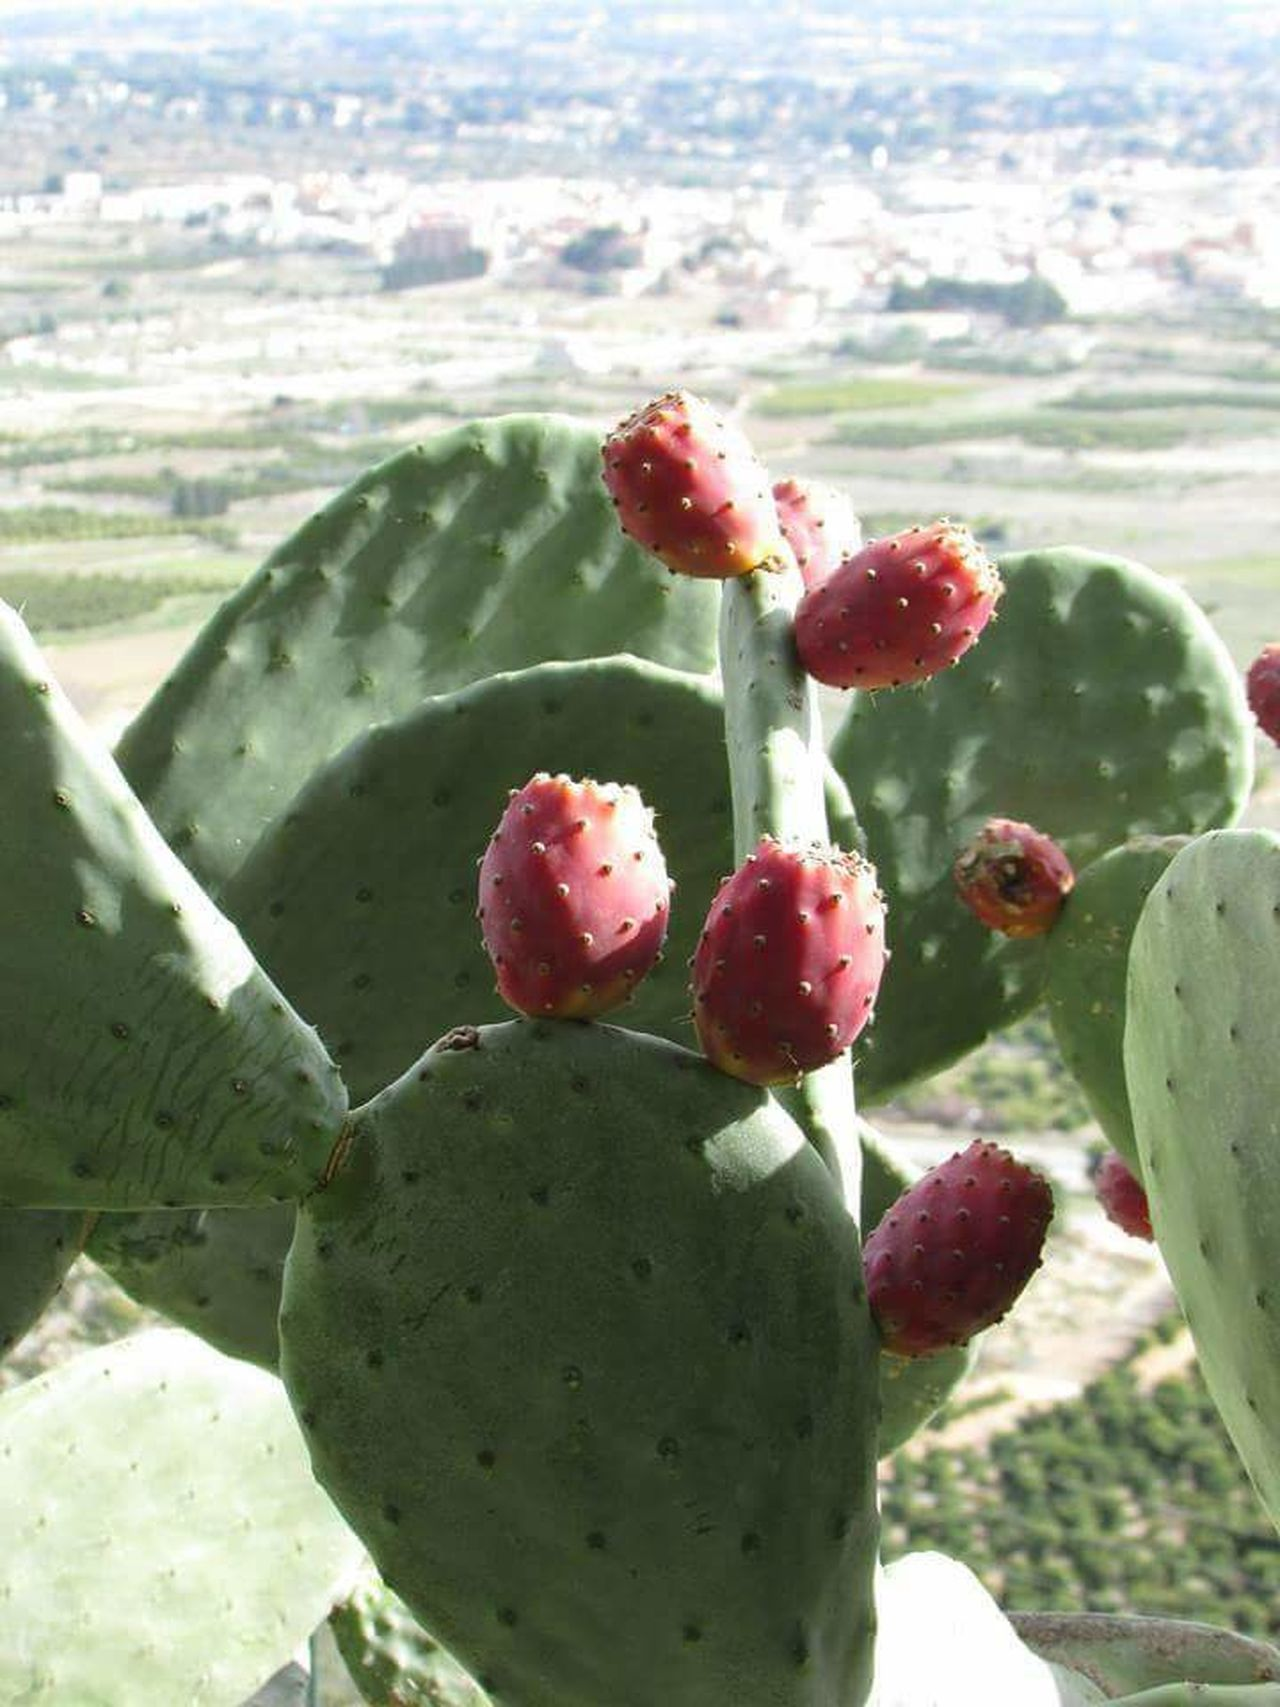 Nature No People Cactus Fruit Outdoors Prickly Pear Cactus Day Growth Beauty In Nature Green Color Food And Drink Close-up Sunlight Tranquility Beach Freshness Food Cold Temperature Sky